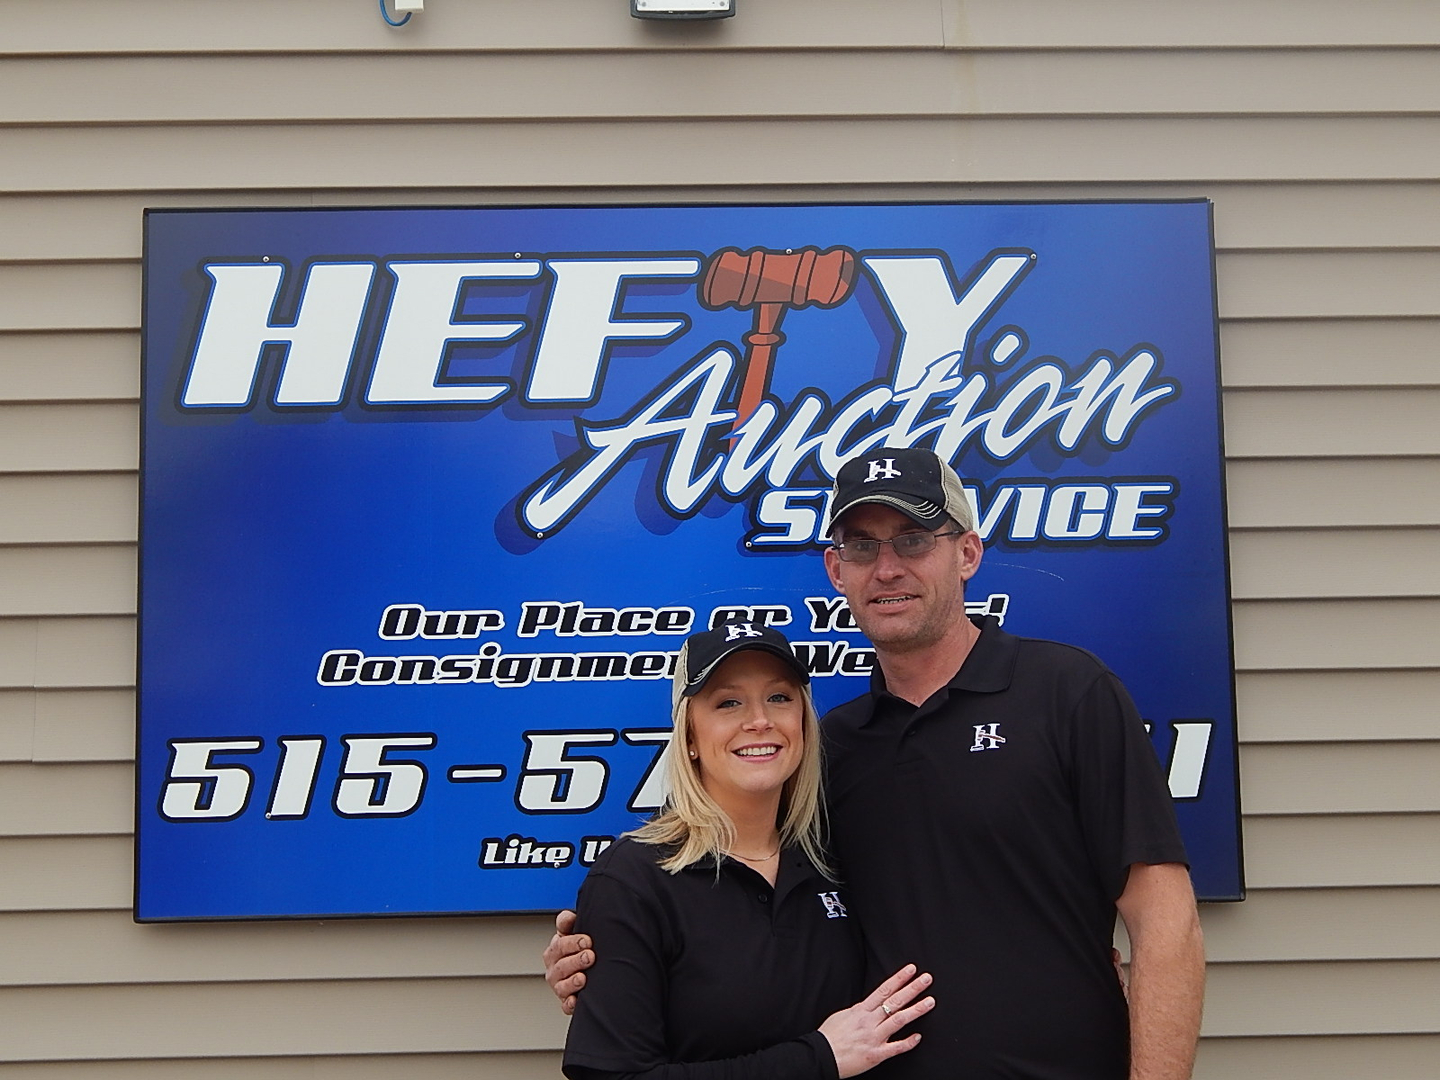 auctioneer hefty auction service www heftyauctionservice com